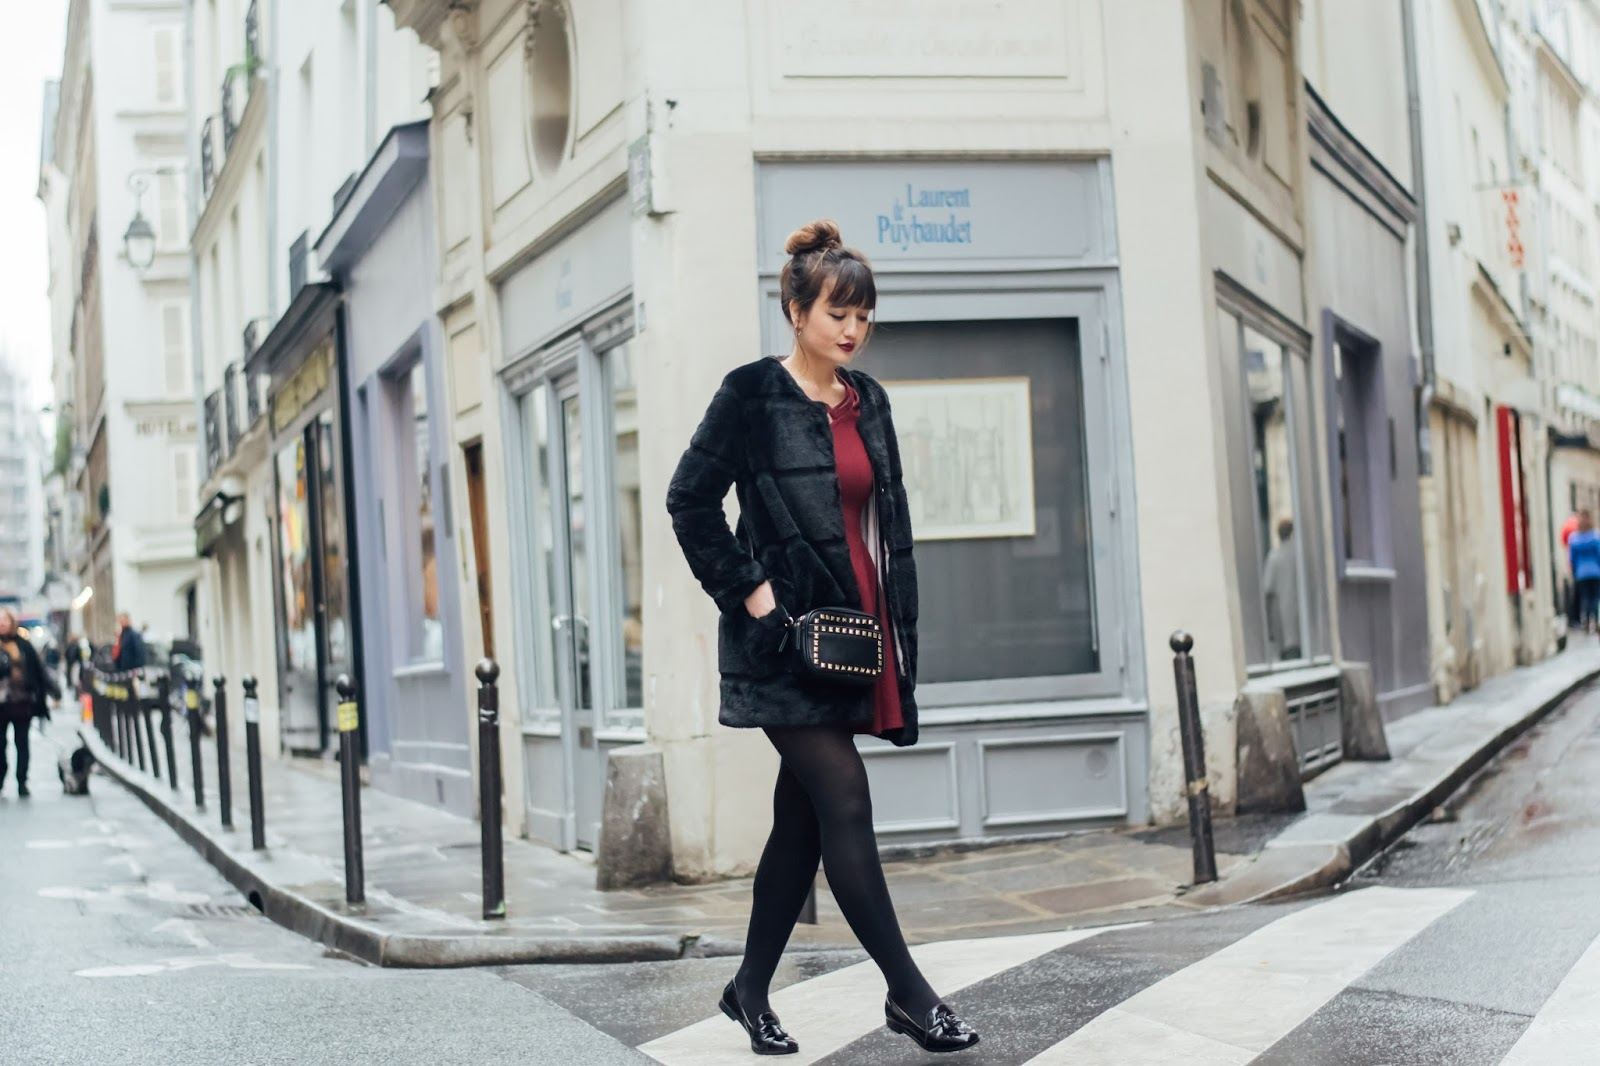 paris, meet me in paree, blogger, fashion, look, style, paris street style, look, chic wish